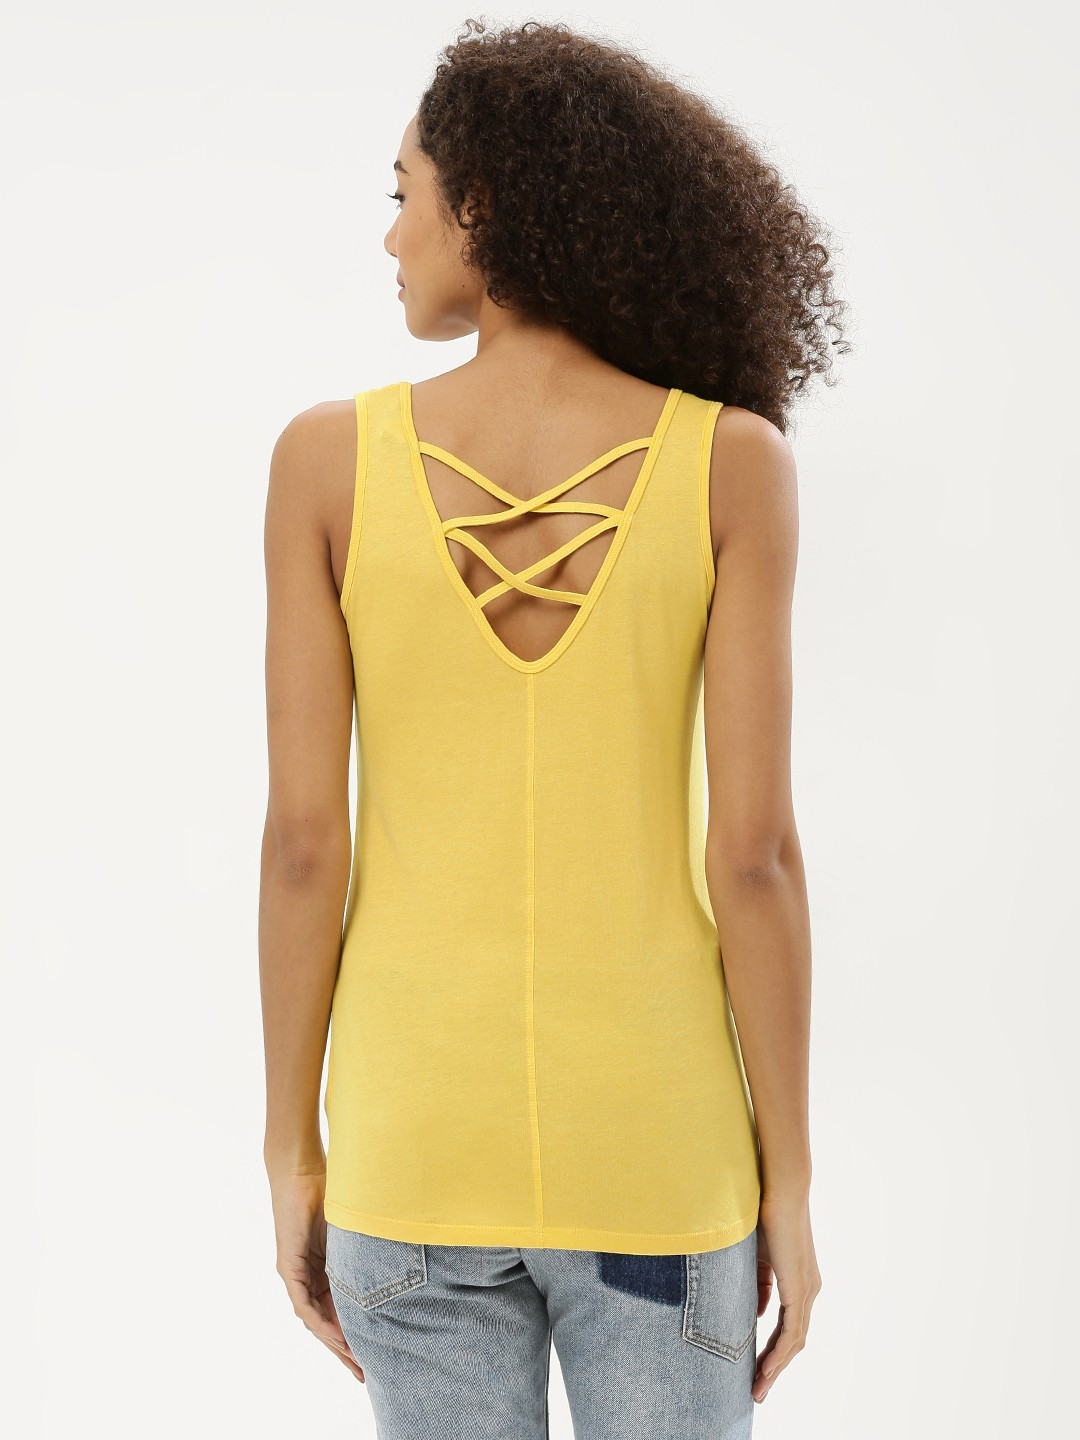 New Look LEMONADE Lattice Back Vest 1